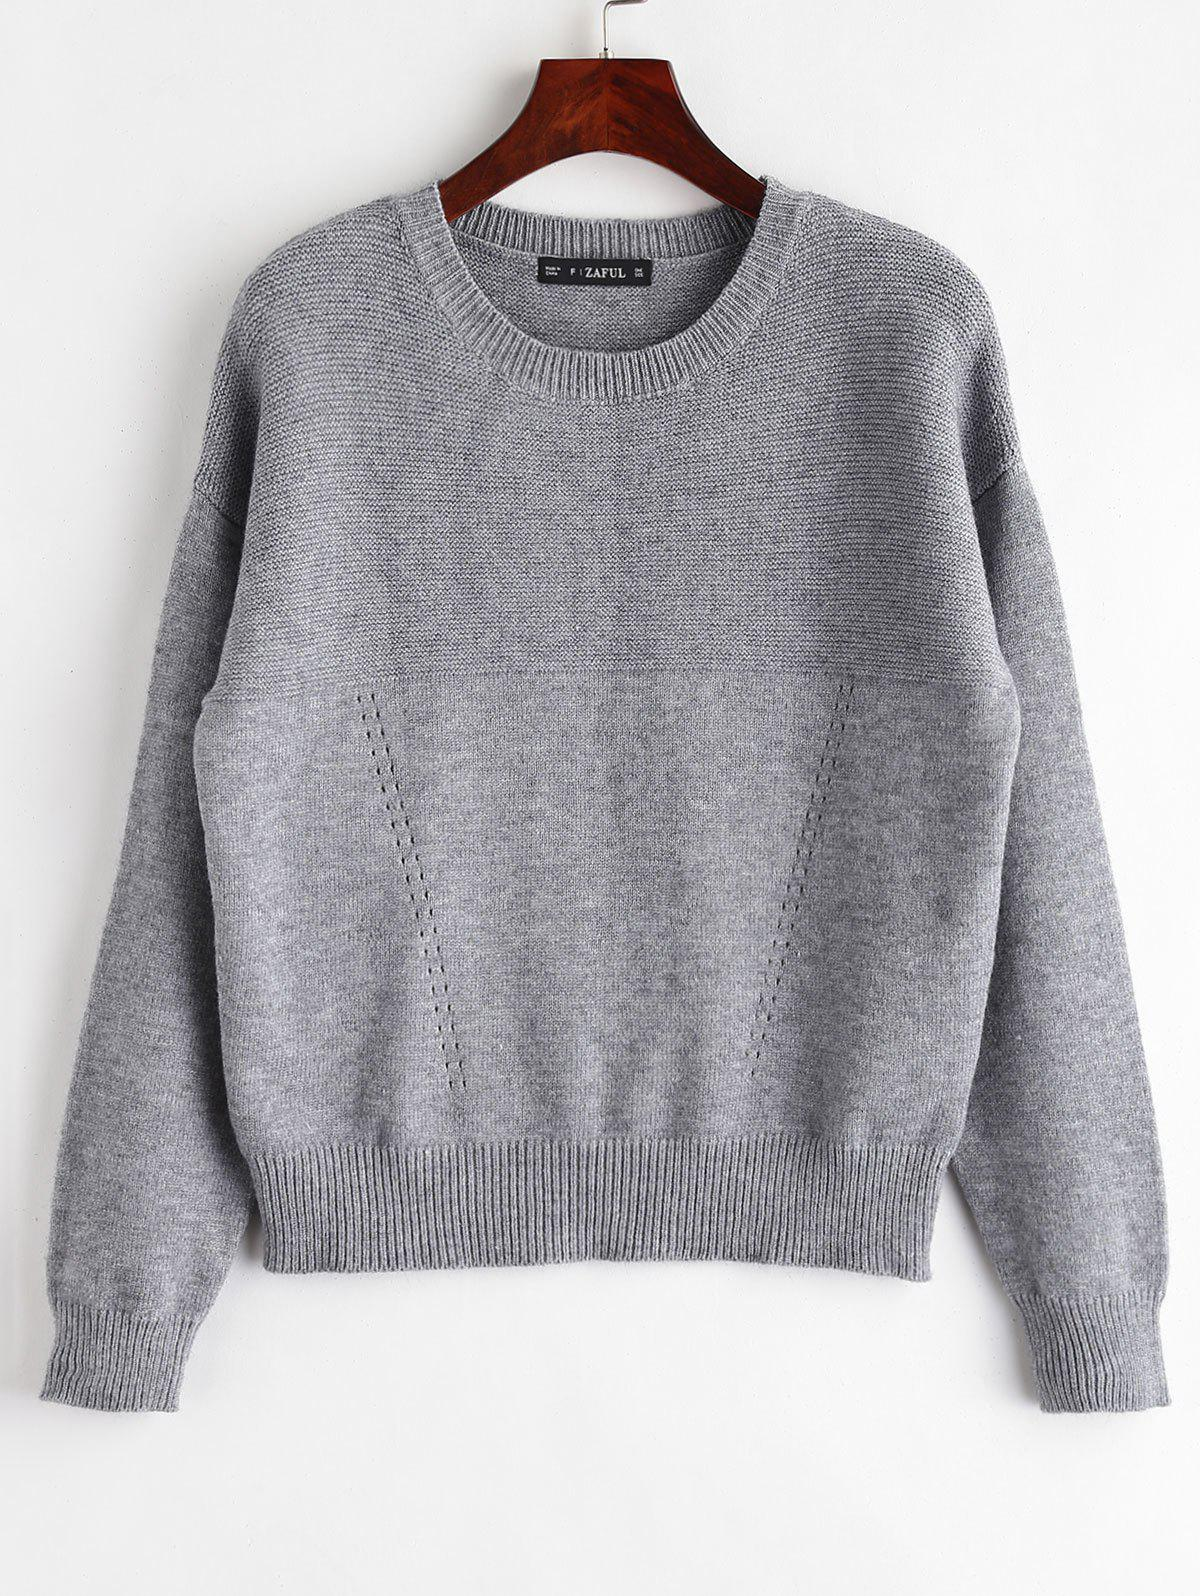 ZAFUL Marl Plain Sweater, Gray